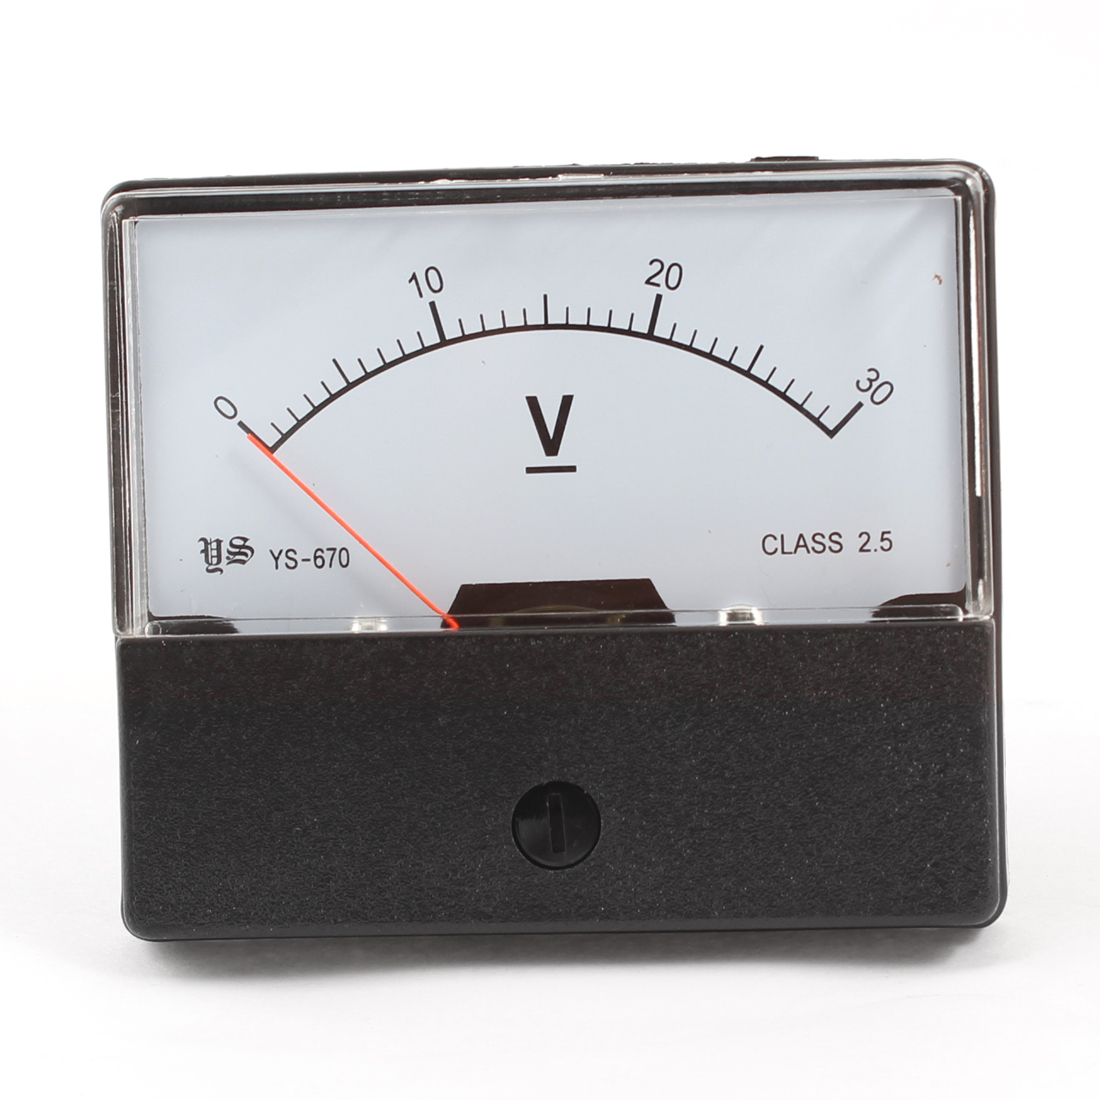 DC 0-30V Rectangle Direct Current Volttage Analog Panel Meter YS-670